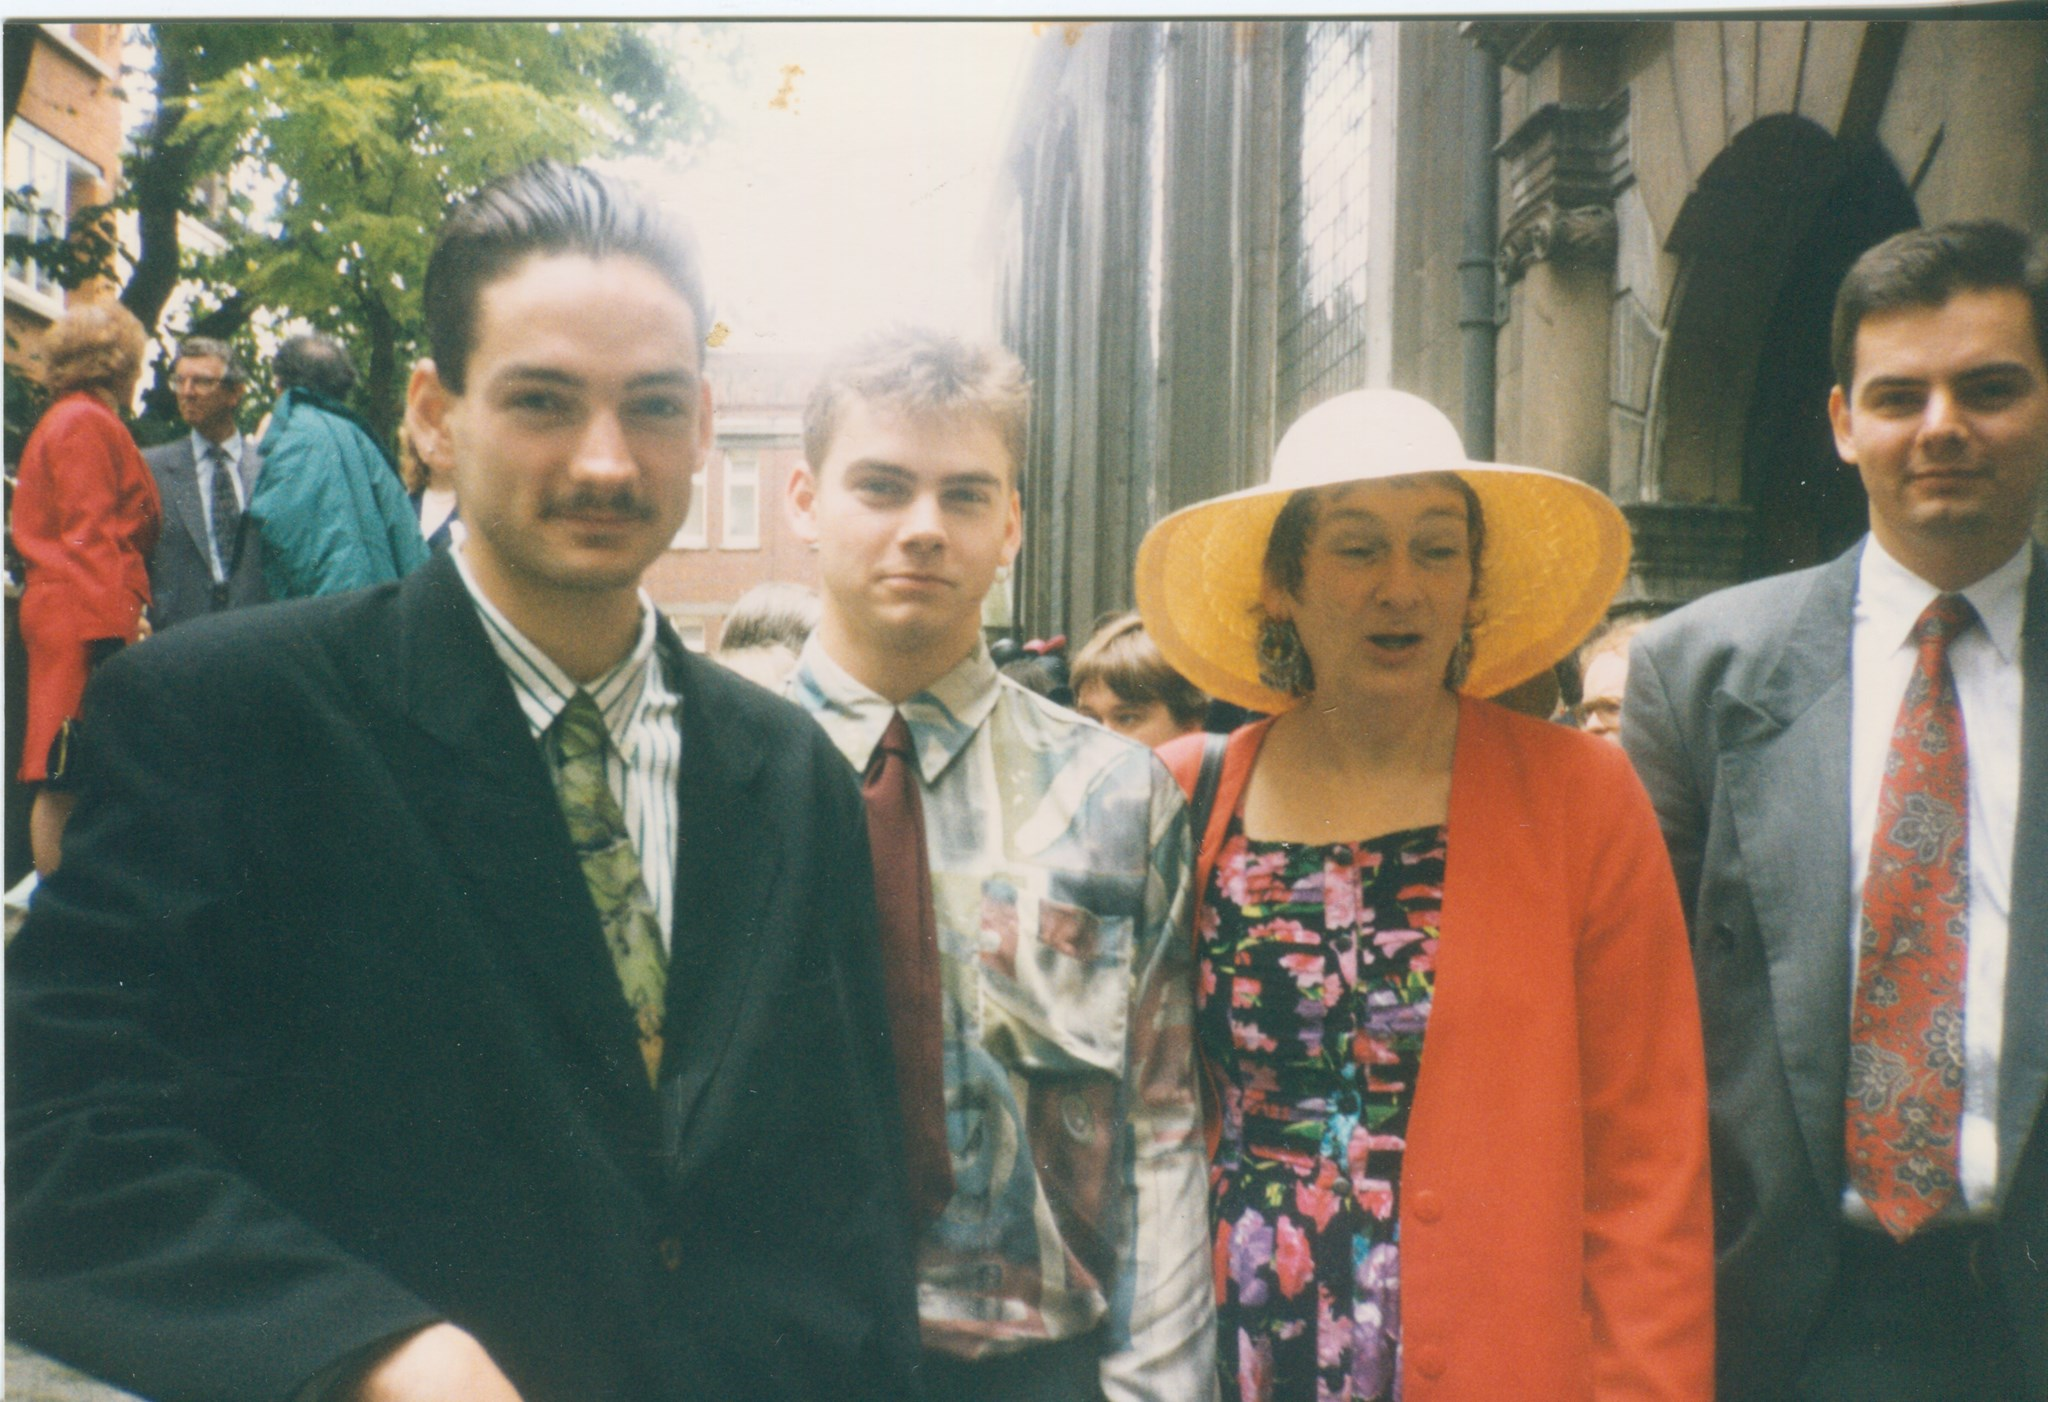 Barbara and sons [Meurig, Iestyn and John (left to right)] at nephew Ralph and Fiona's wedding